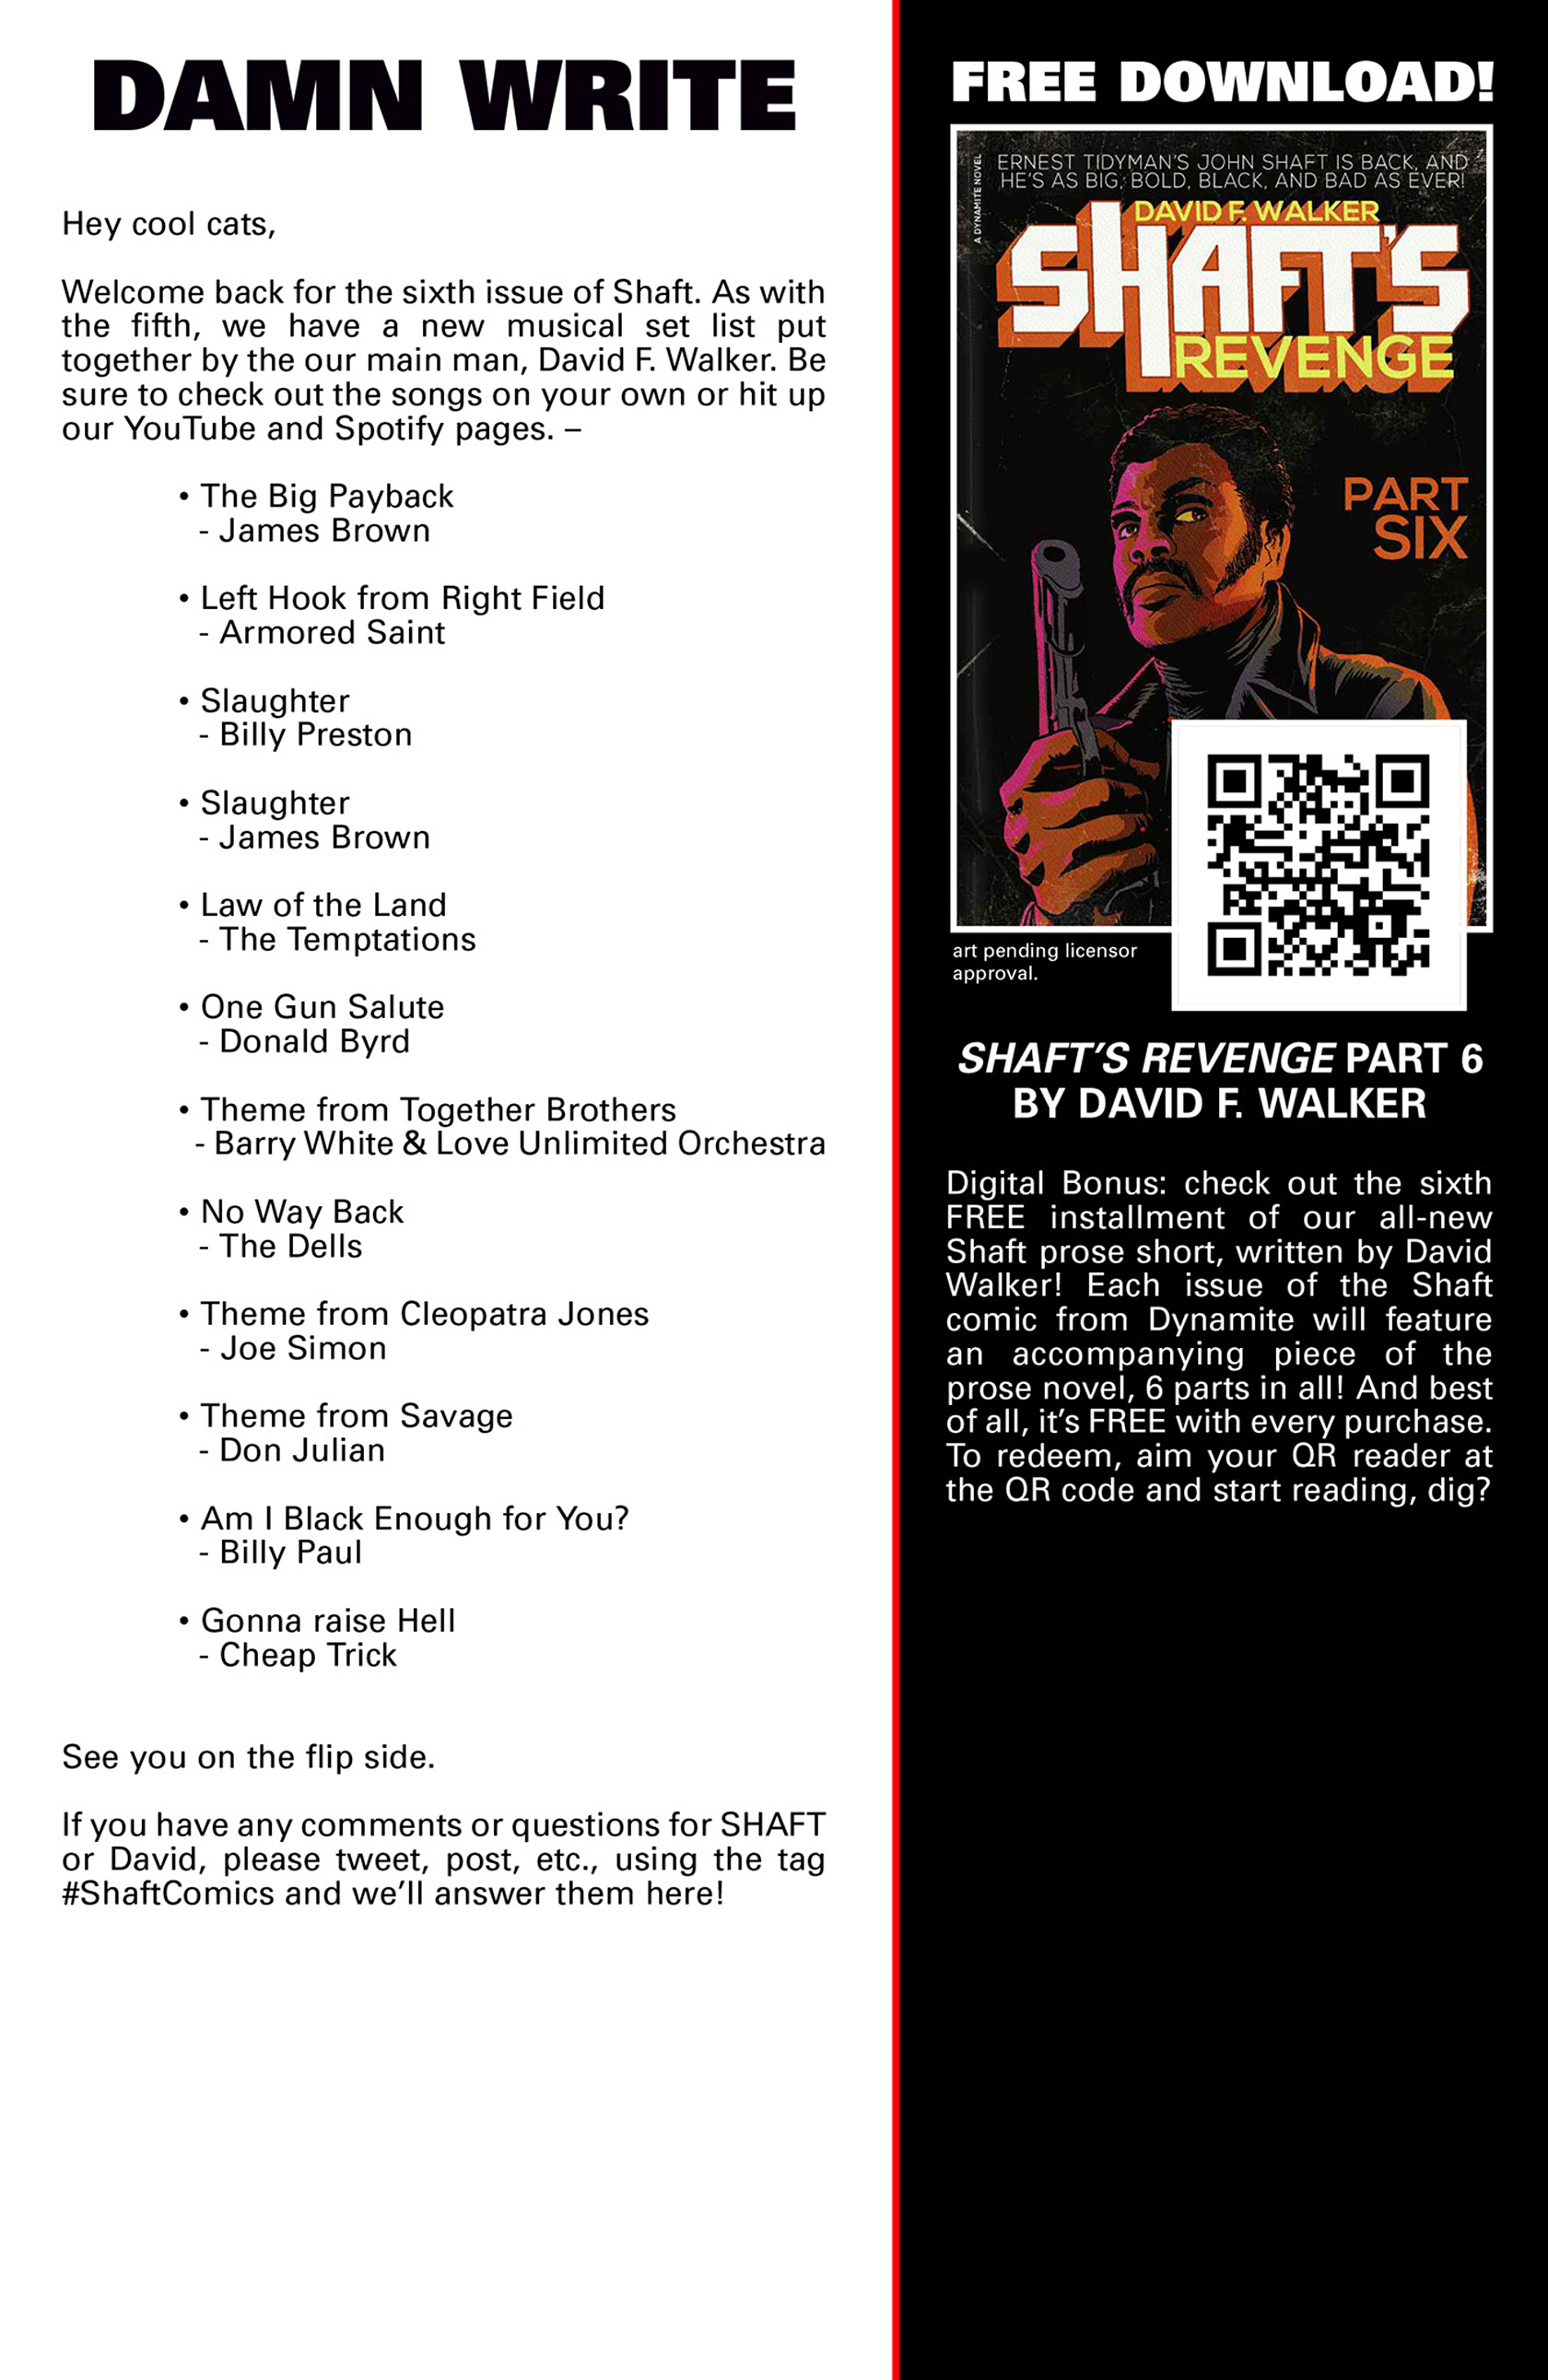 Read online Shaft comic -  Issue #6 - 24